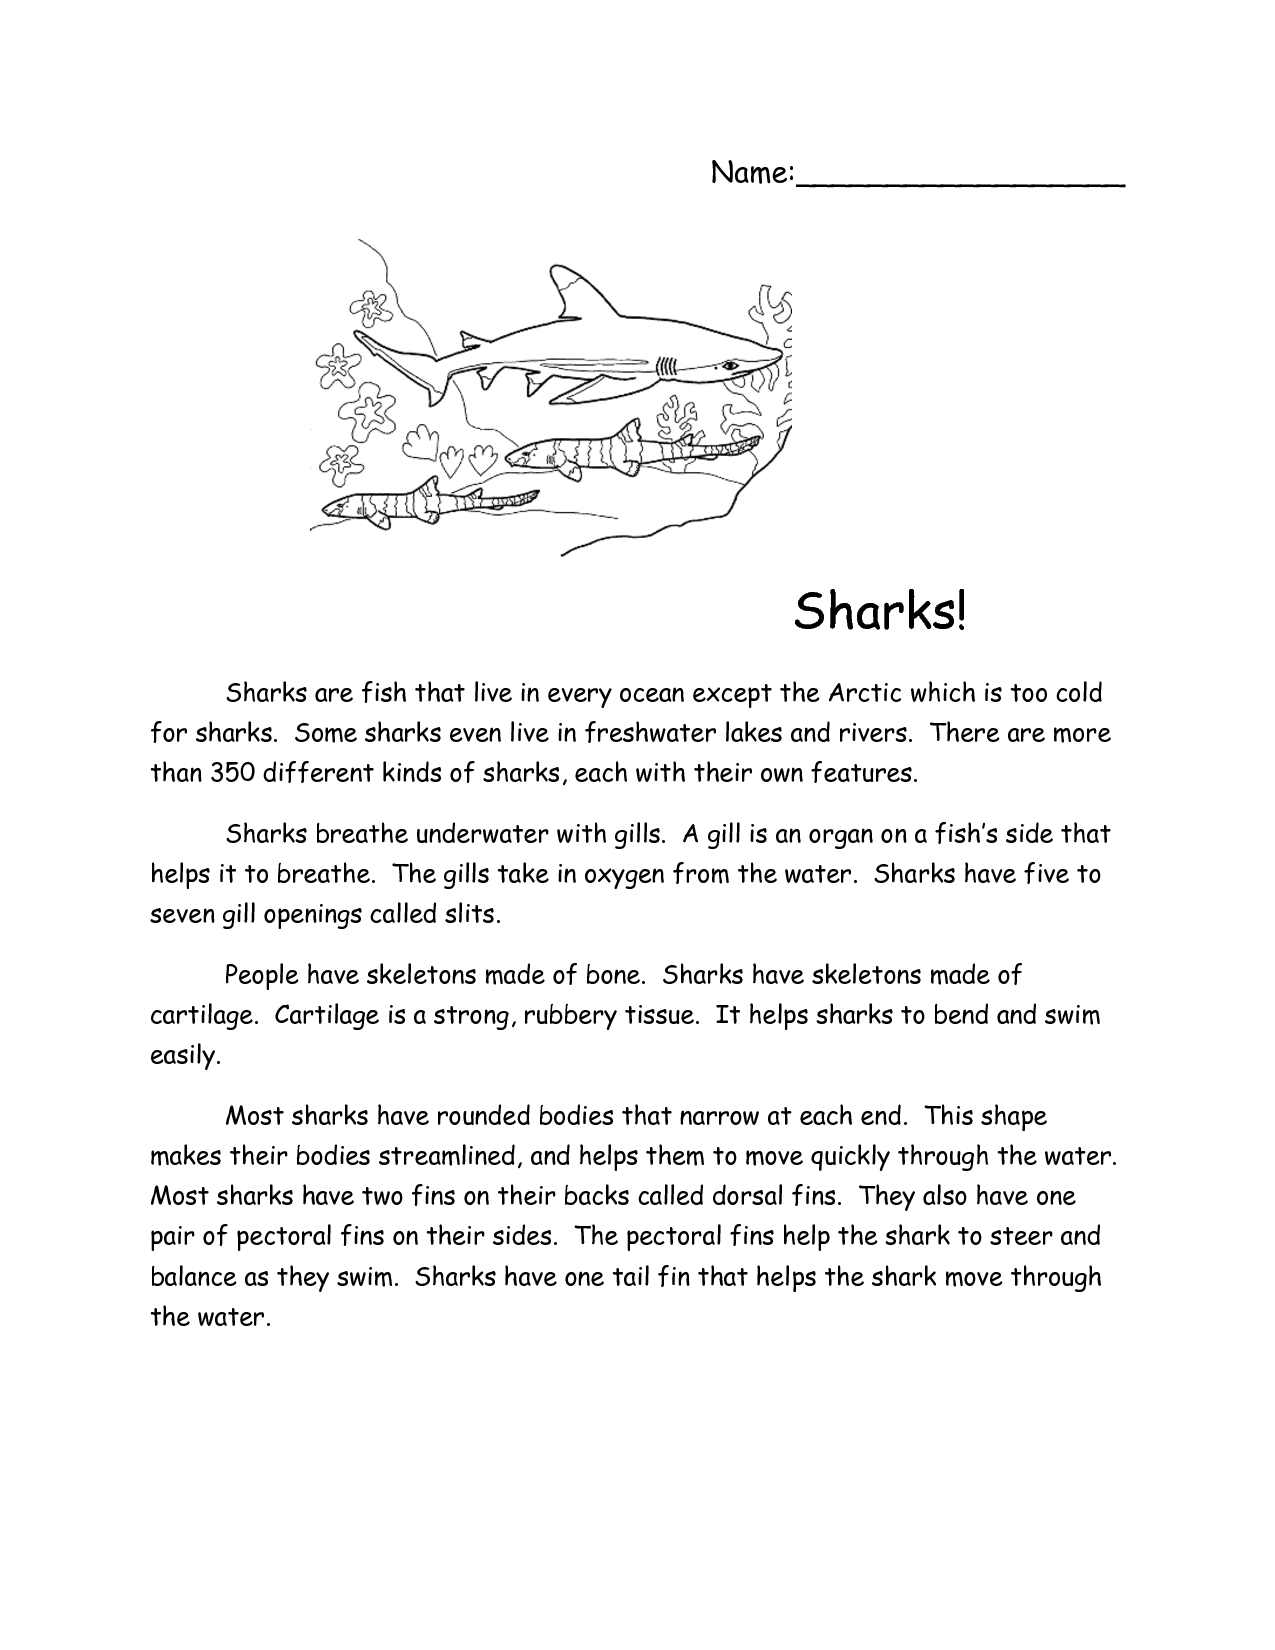 Sharks Reading Comprehension Passage